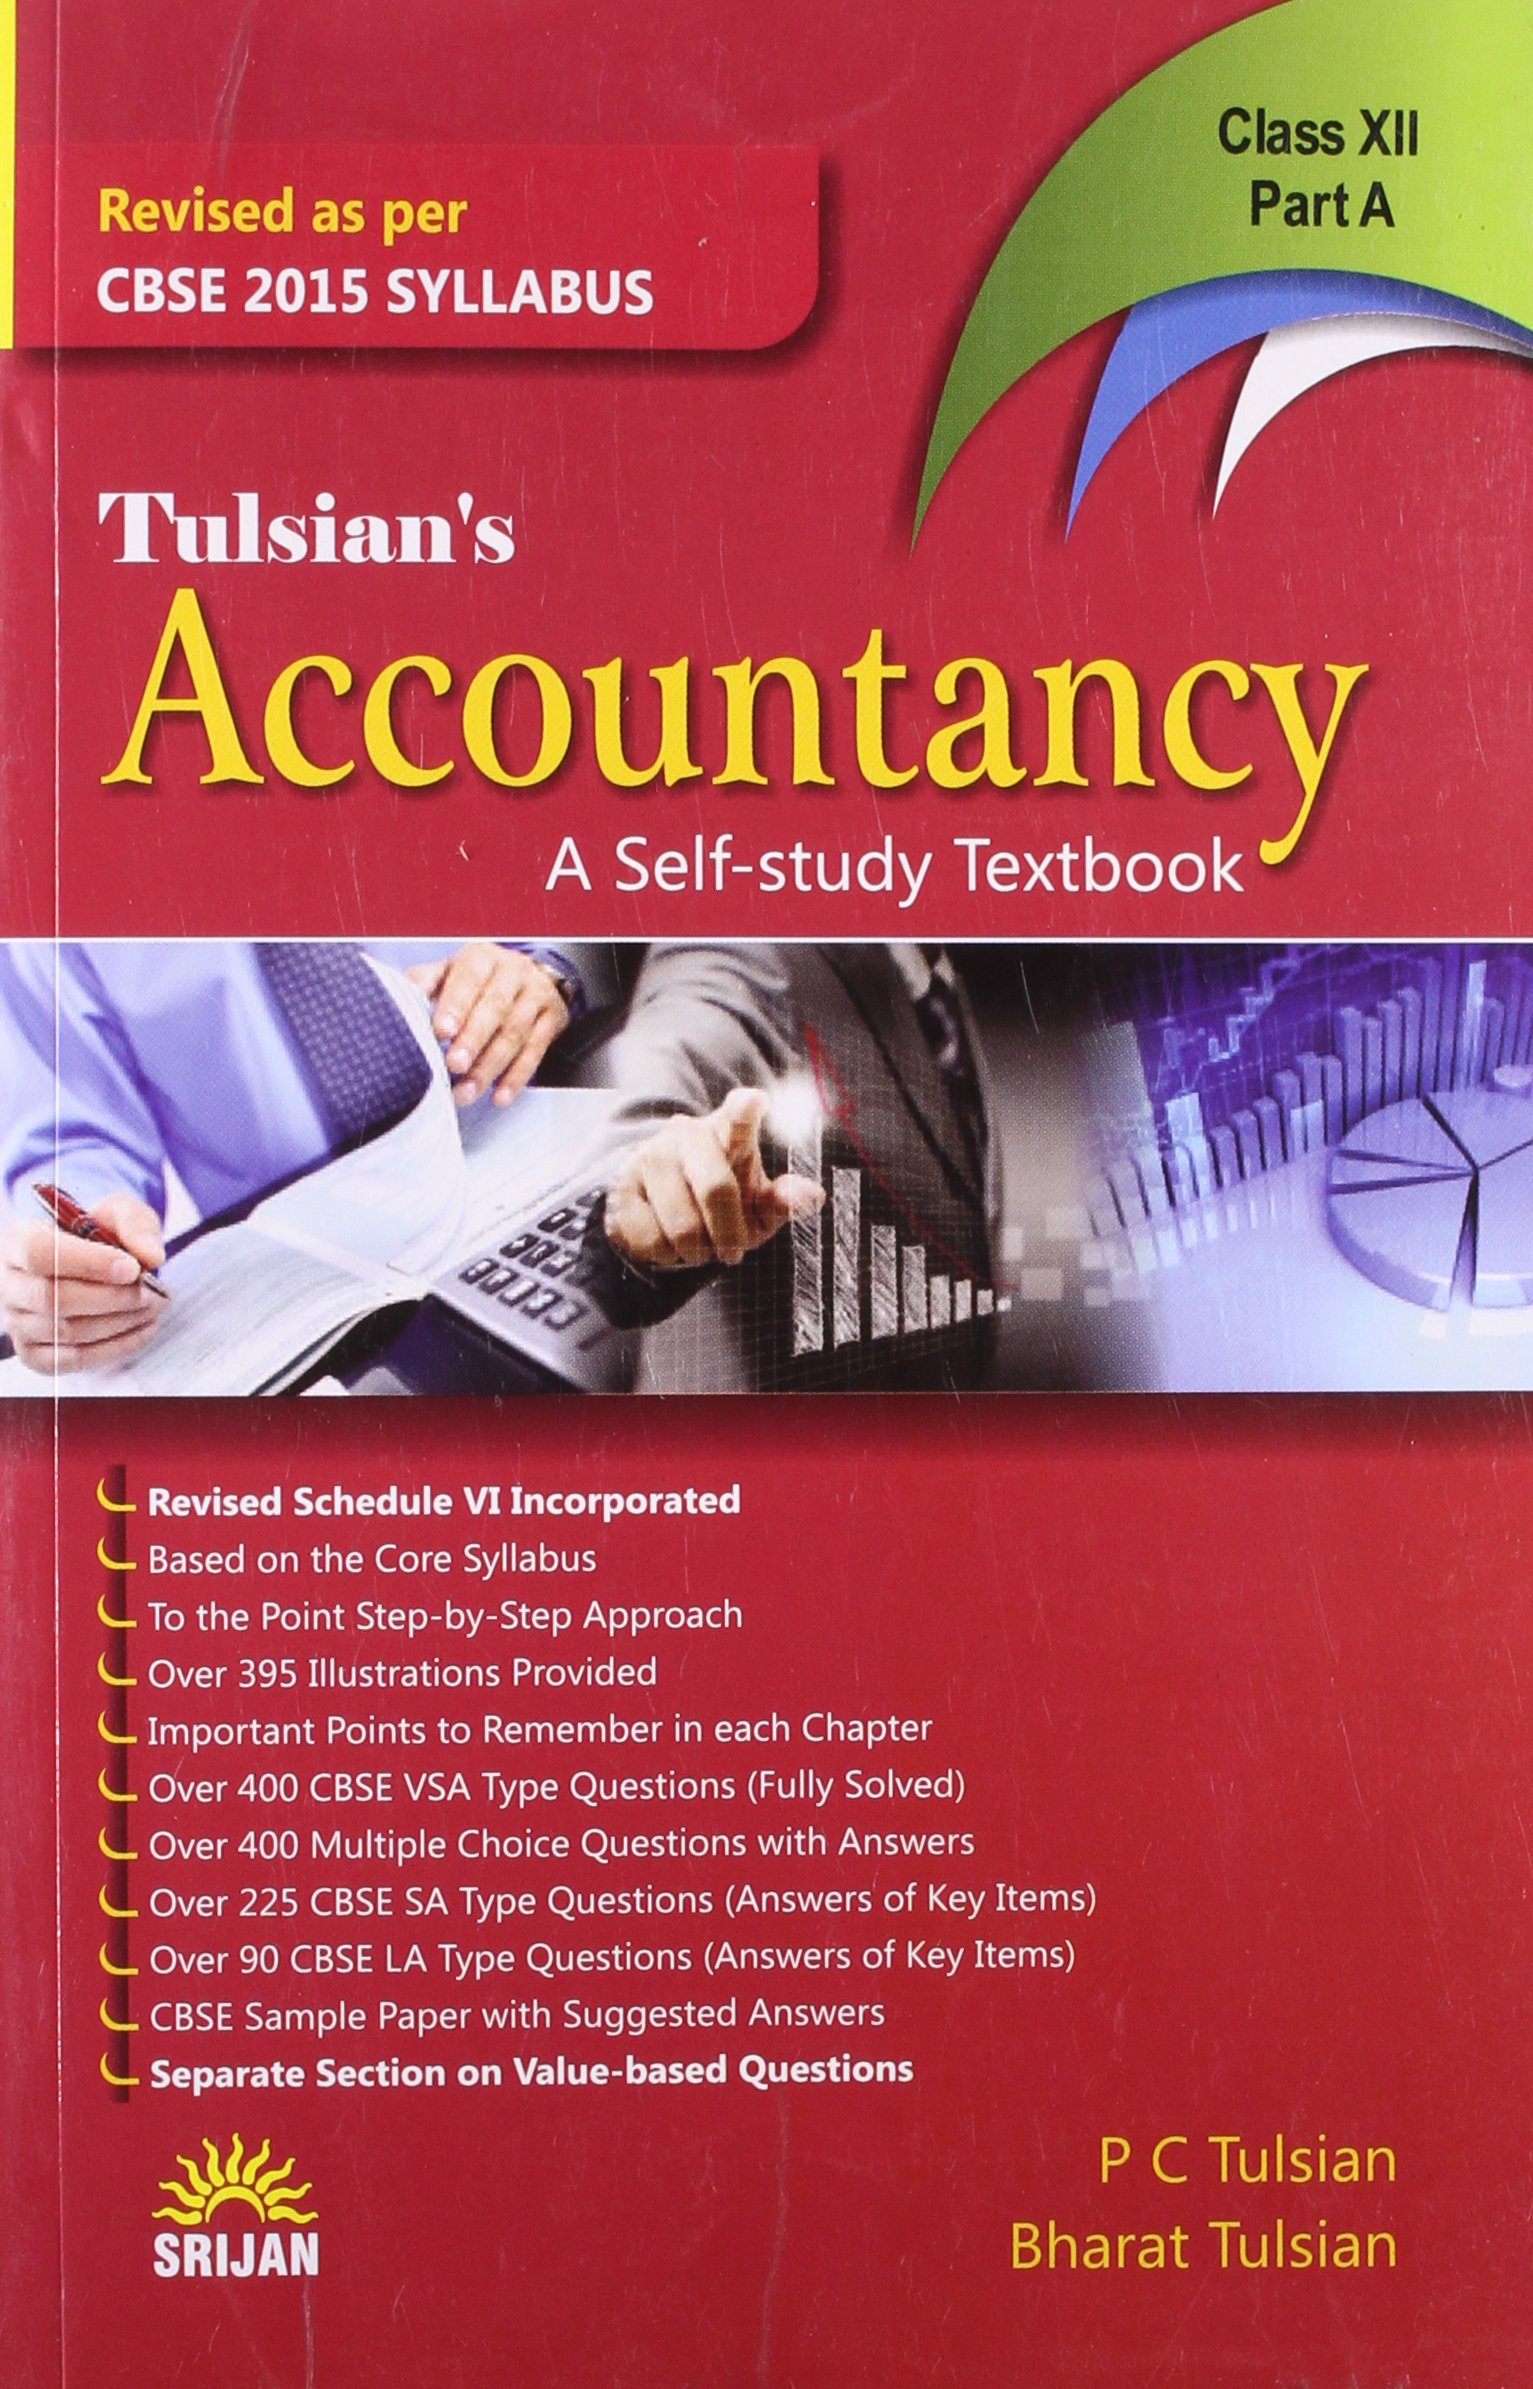 Accountancy: A Self-Study Textbook for Class XII - Part A and B Set of 2  Books: Amazon.in: P.C. Tulsian, Bharat Tuslian: Books